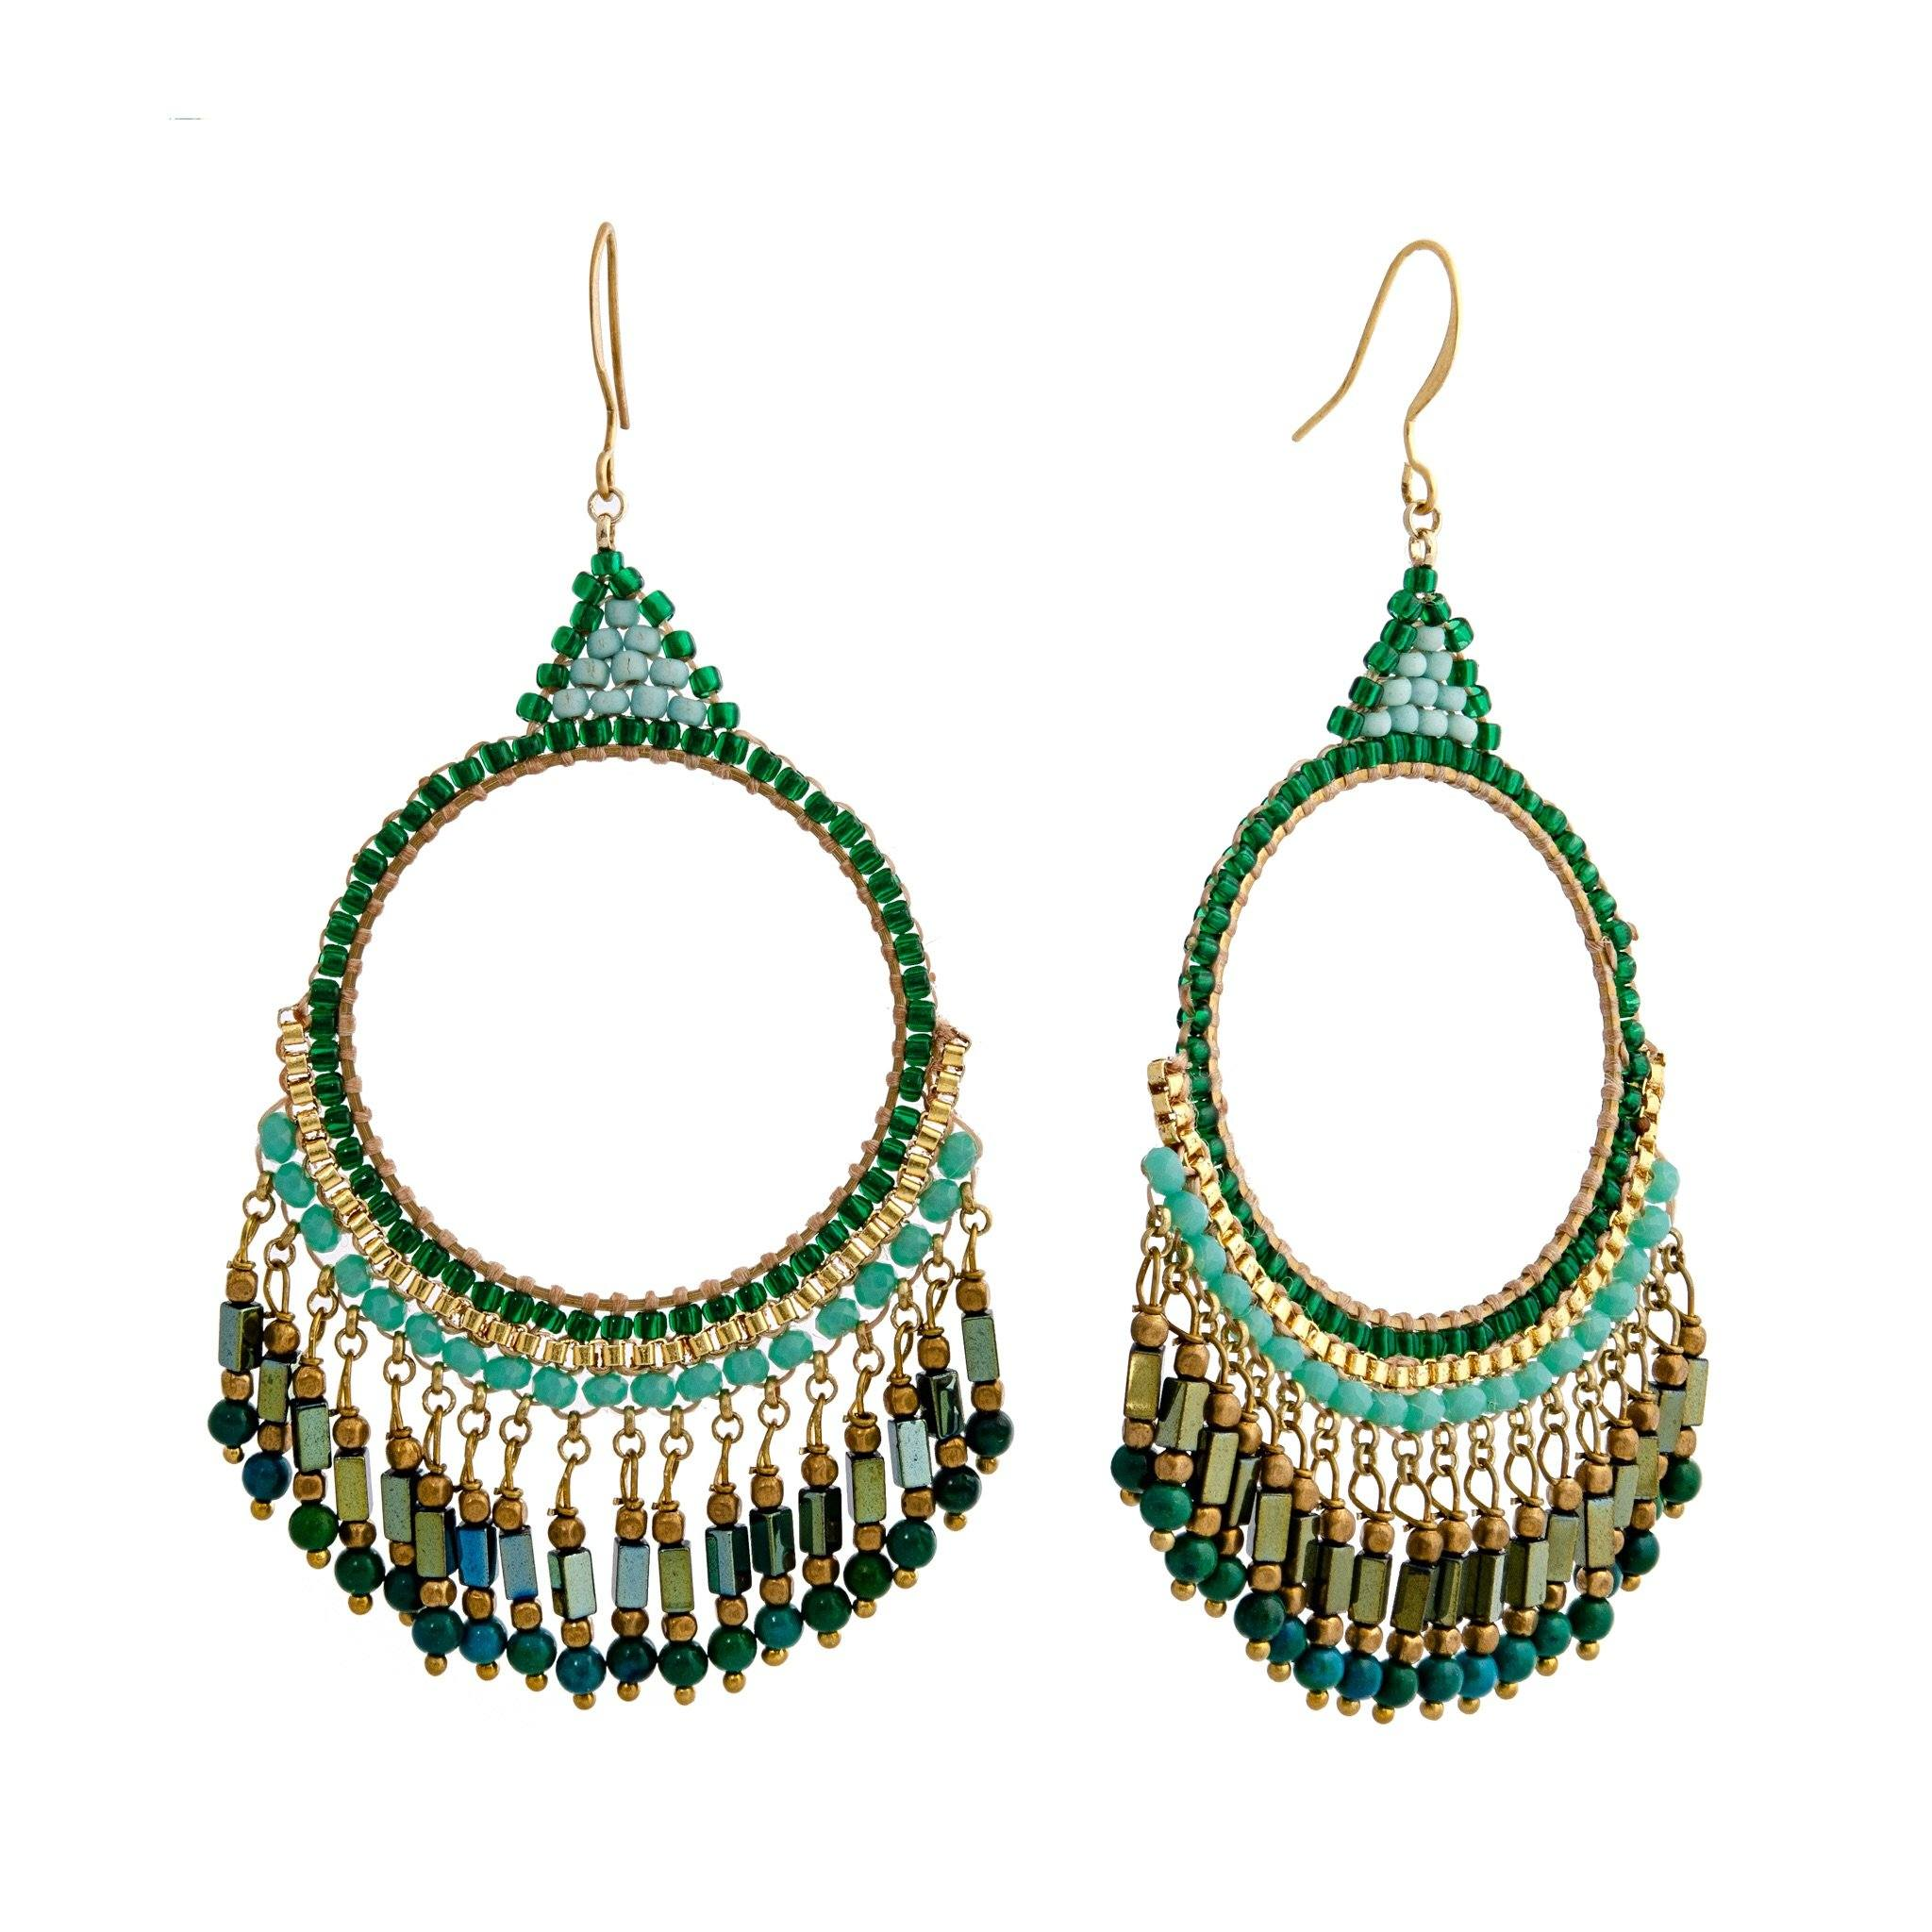 BOHEMIA green earrings - MadamSiam